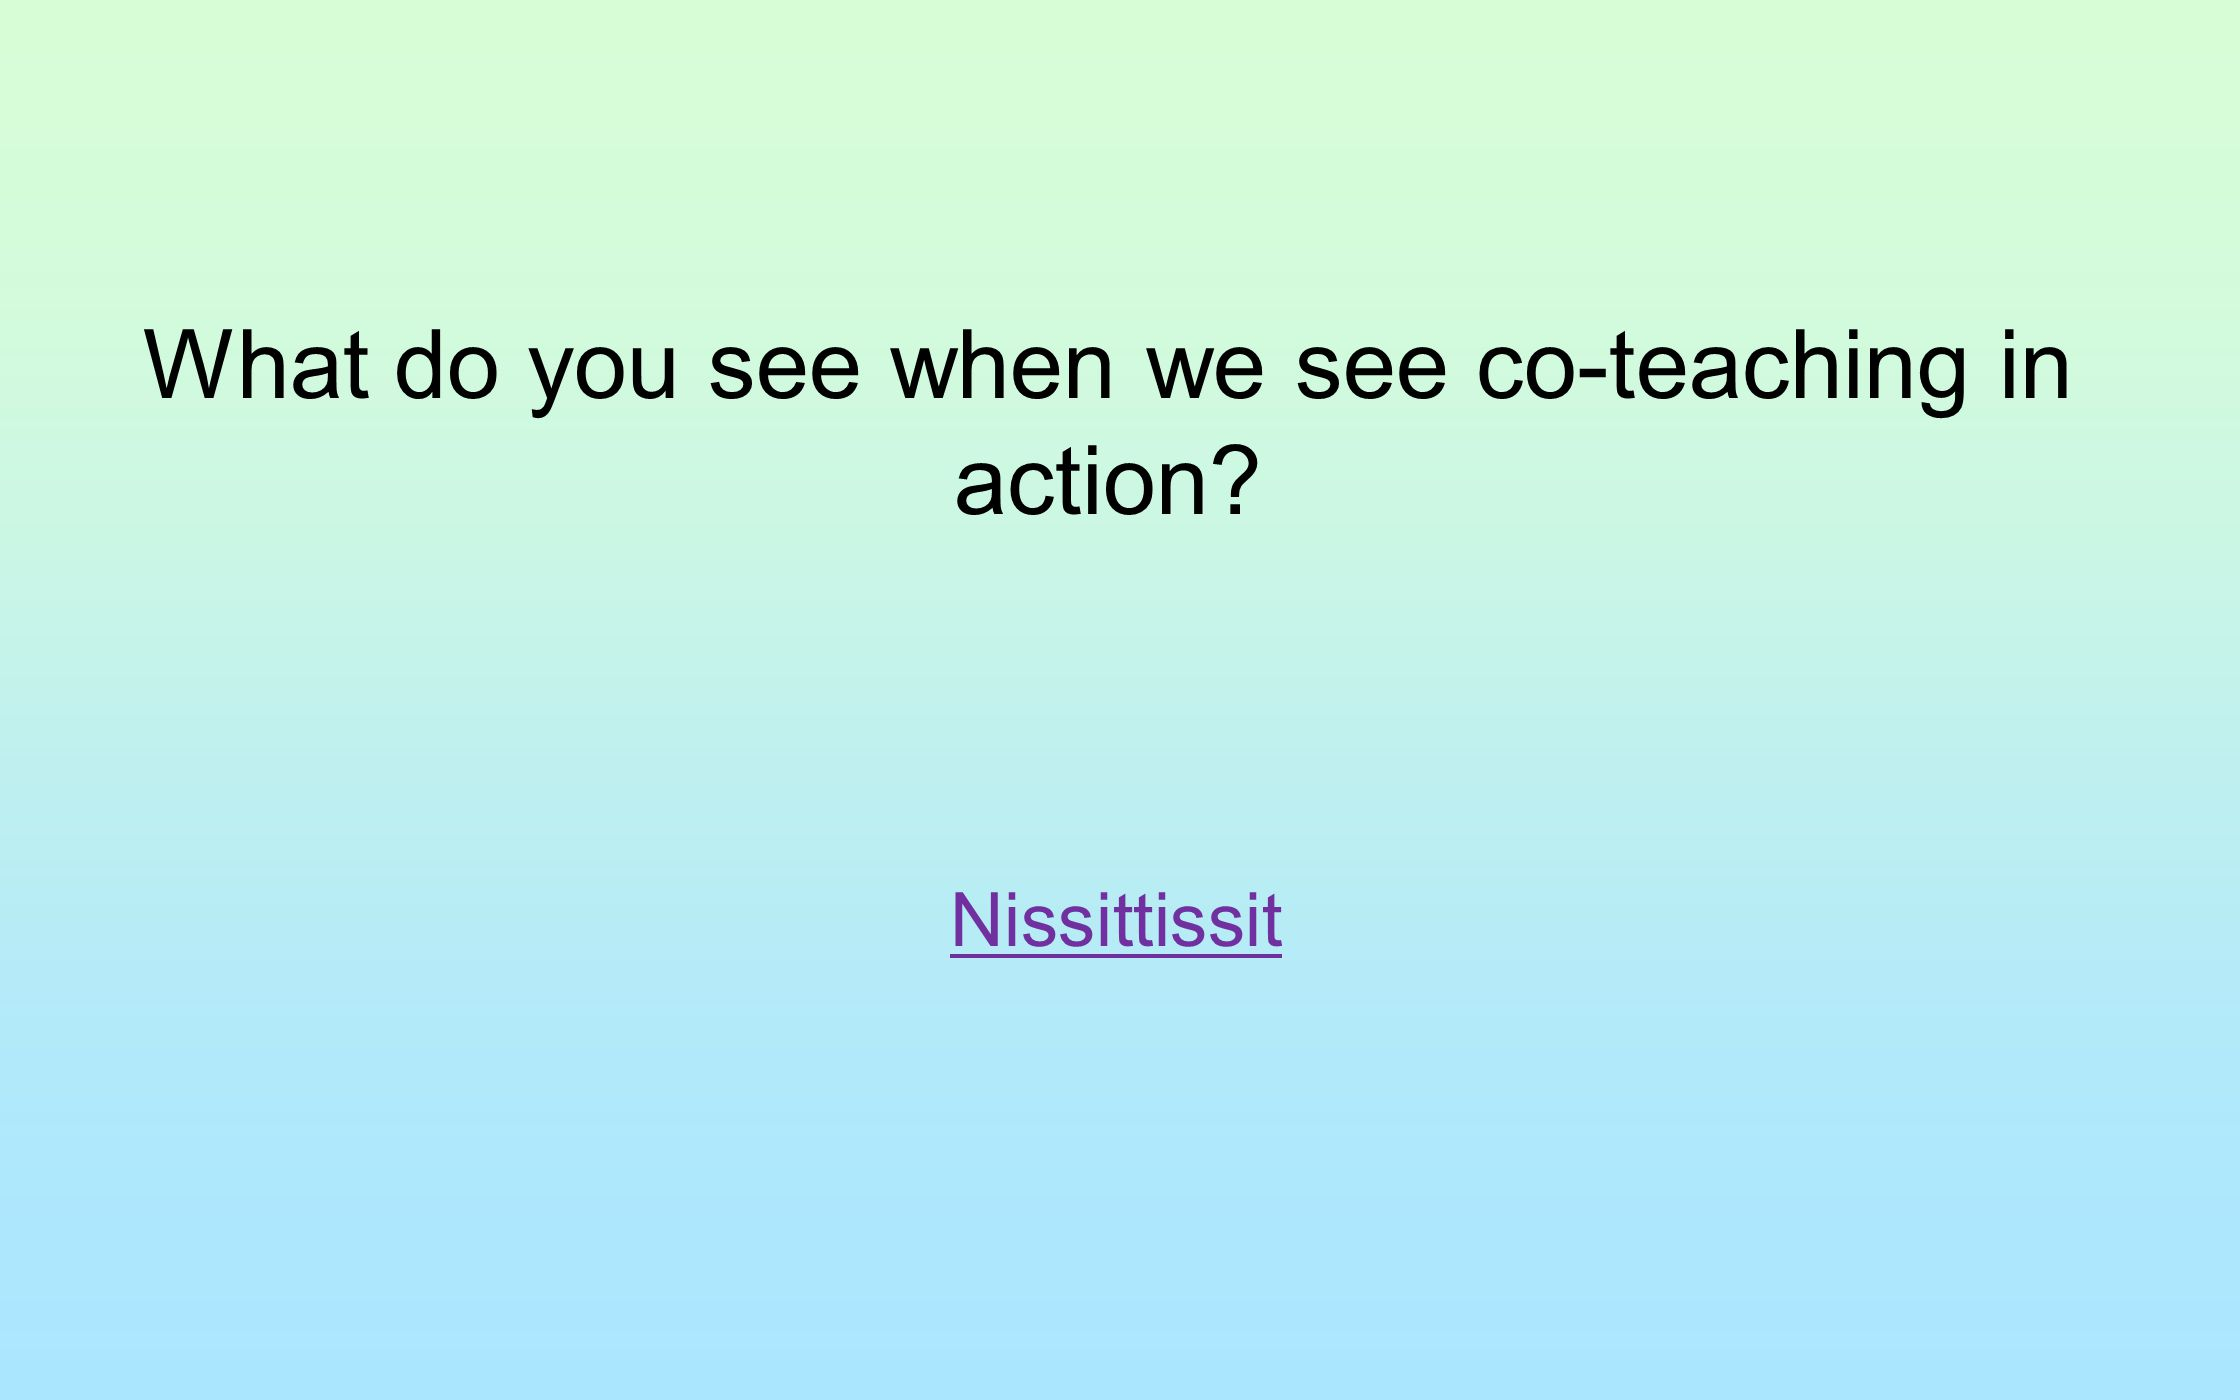 What do you see when we see co-teaching in action